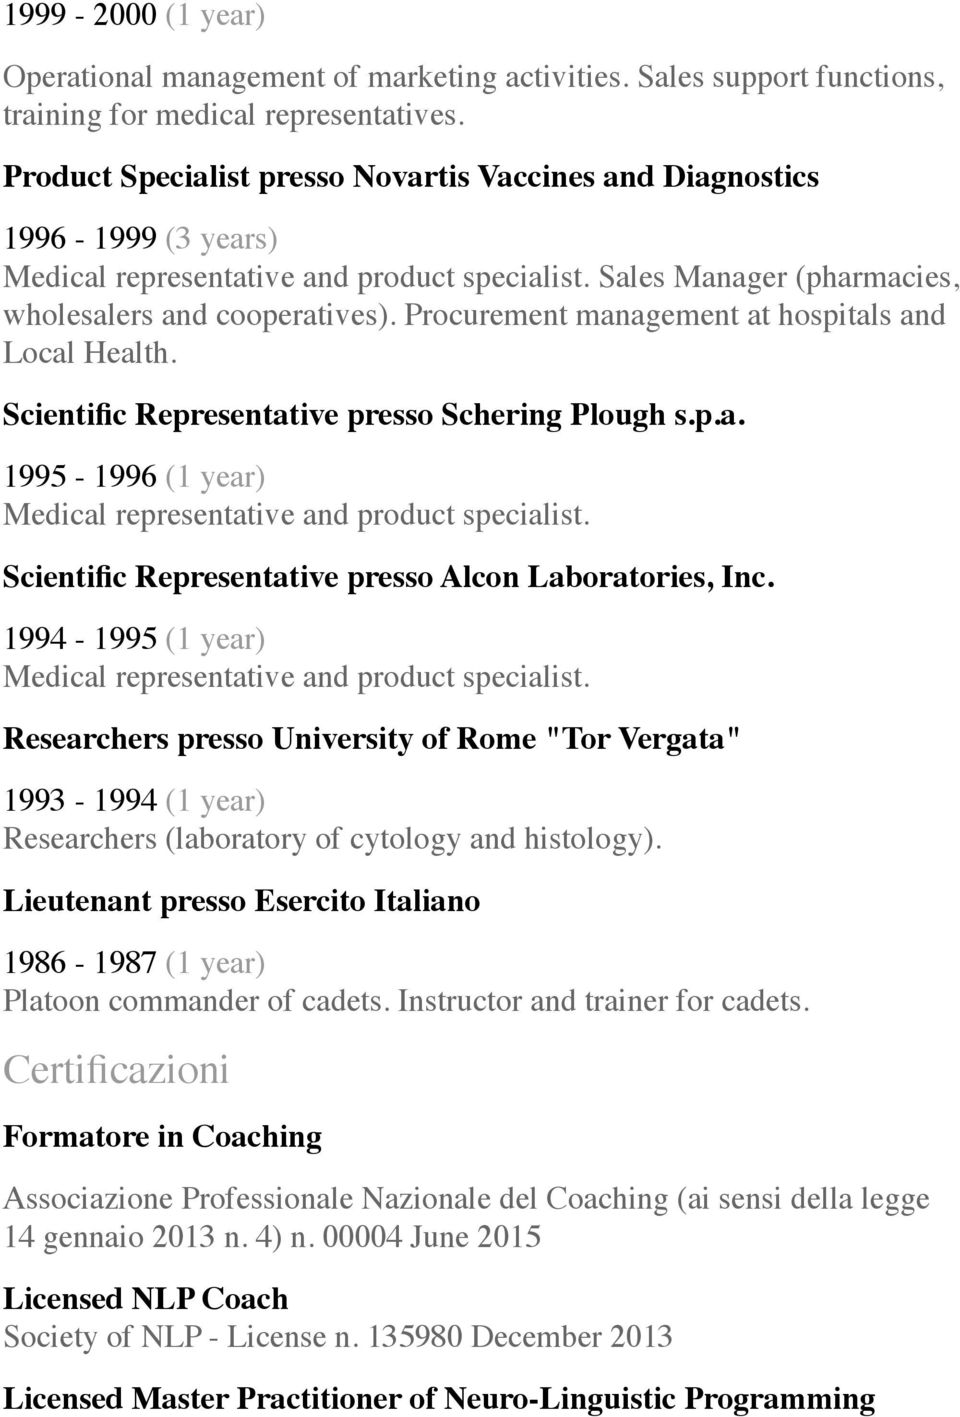 Procurement management at hospitals and Local Health. Scientific Representative presso Schering Plough s.p.a. 1995-1996 (1 year) Medical representative and product specialist.